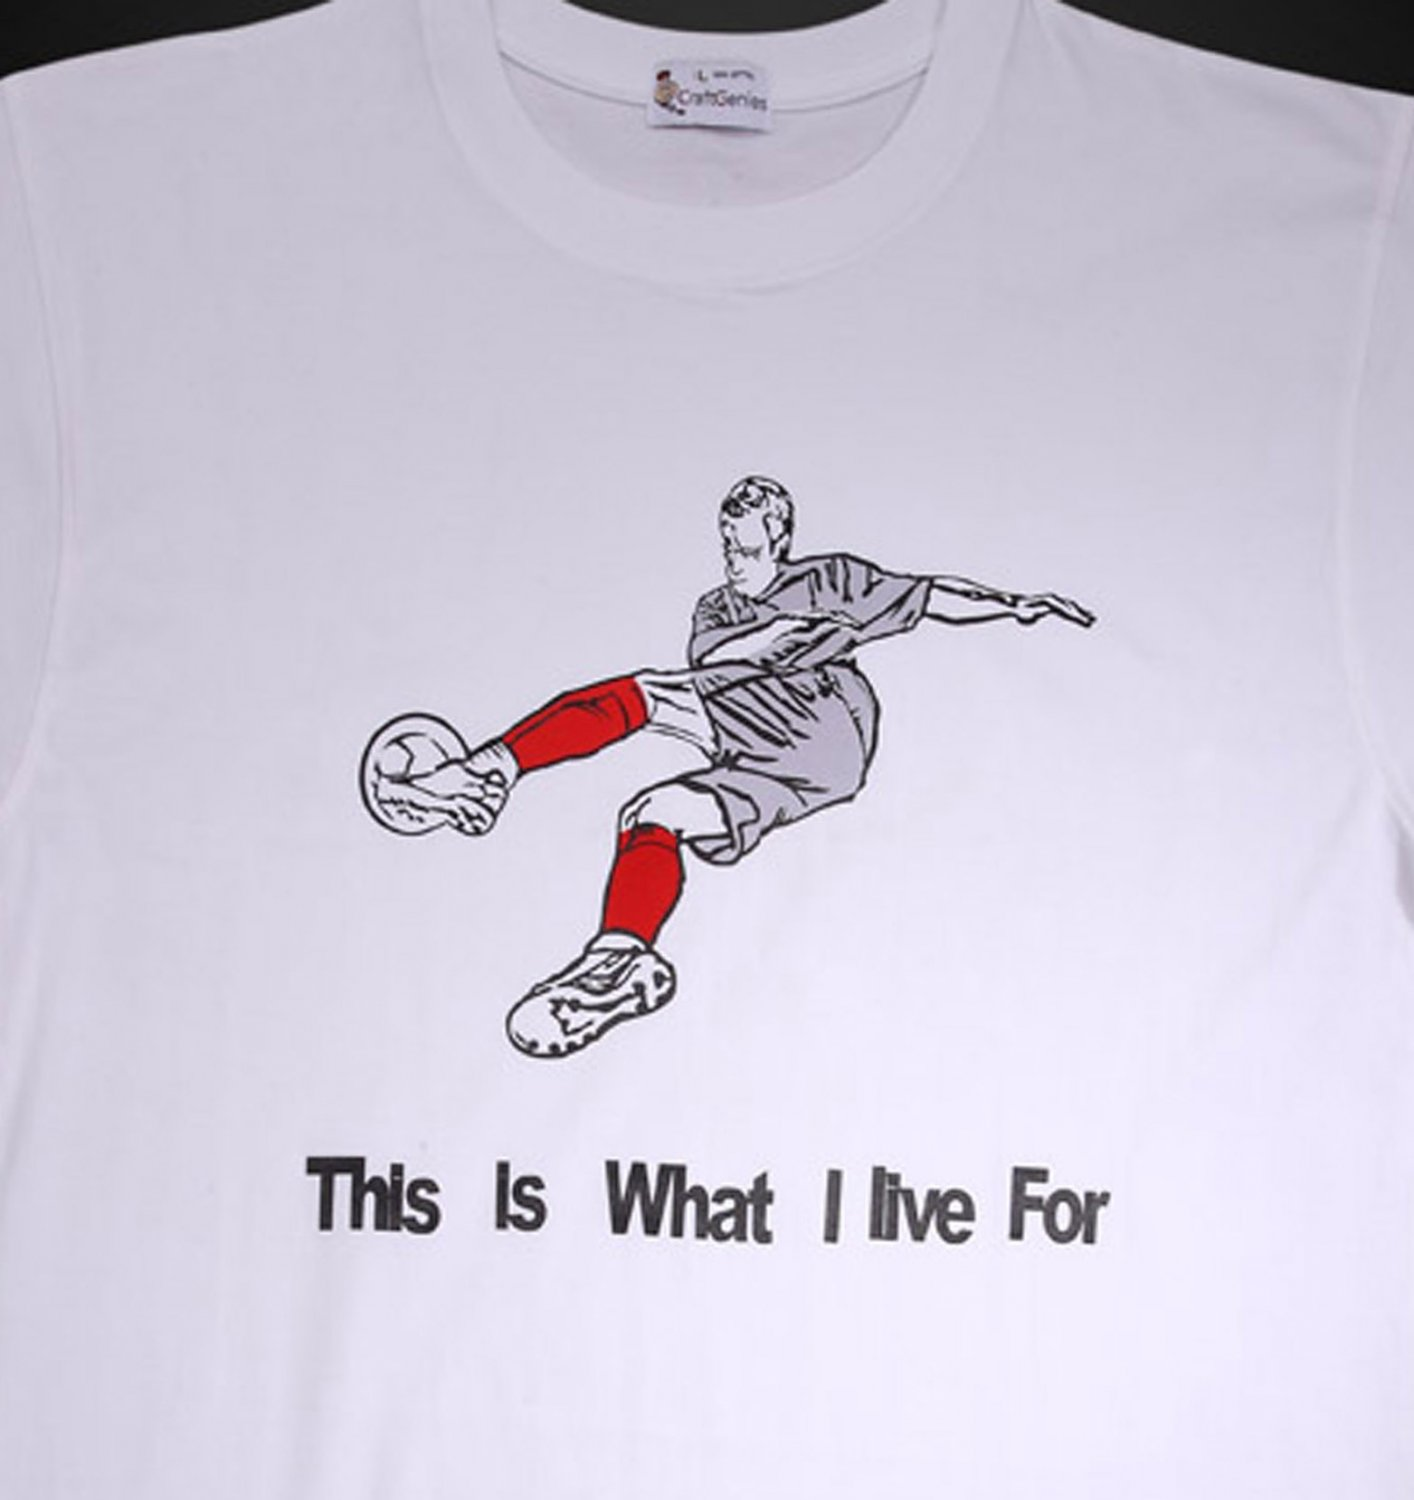 Football T Shirts for Men - Original New Package   (Men's Large)